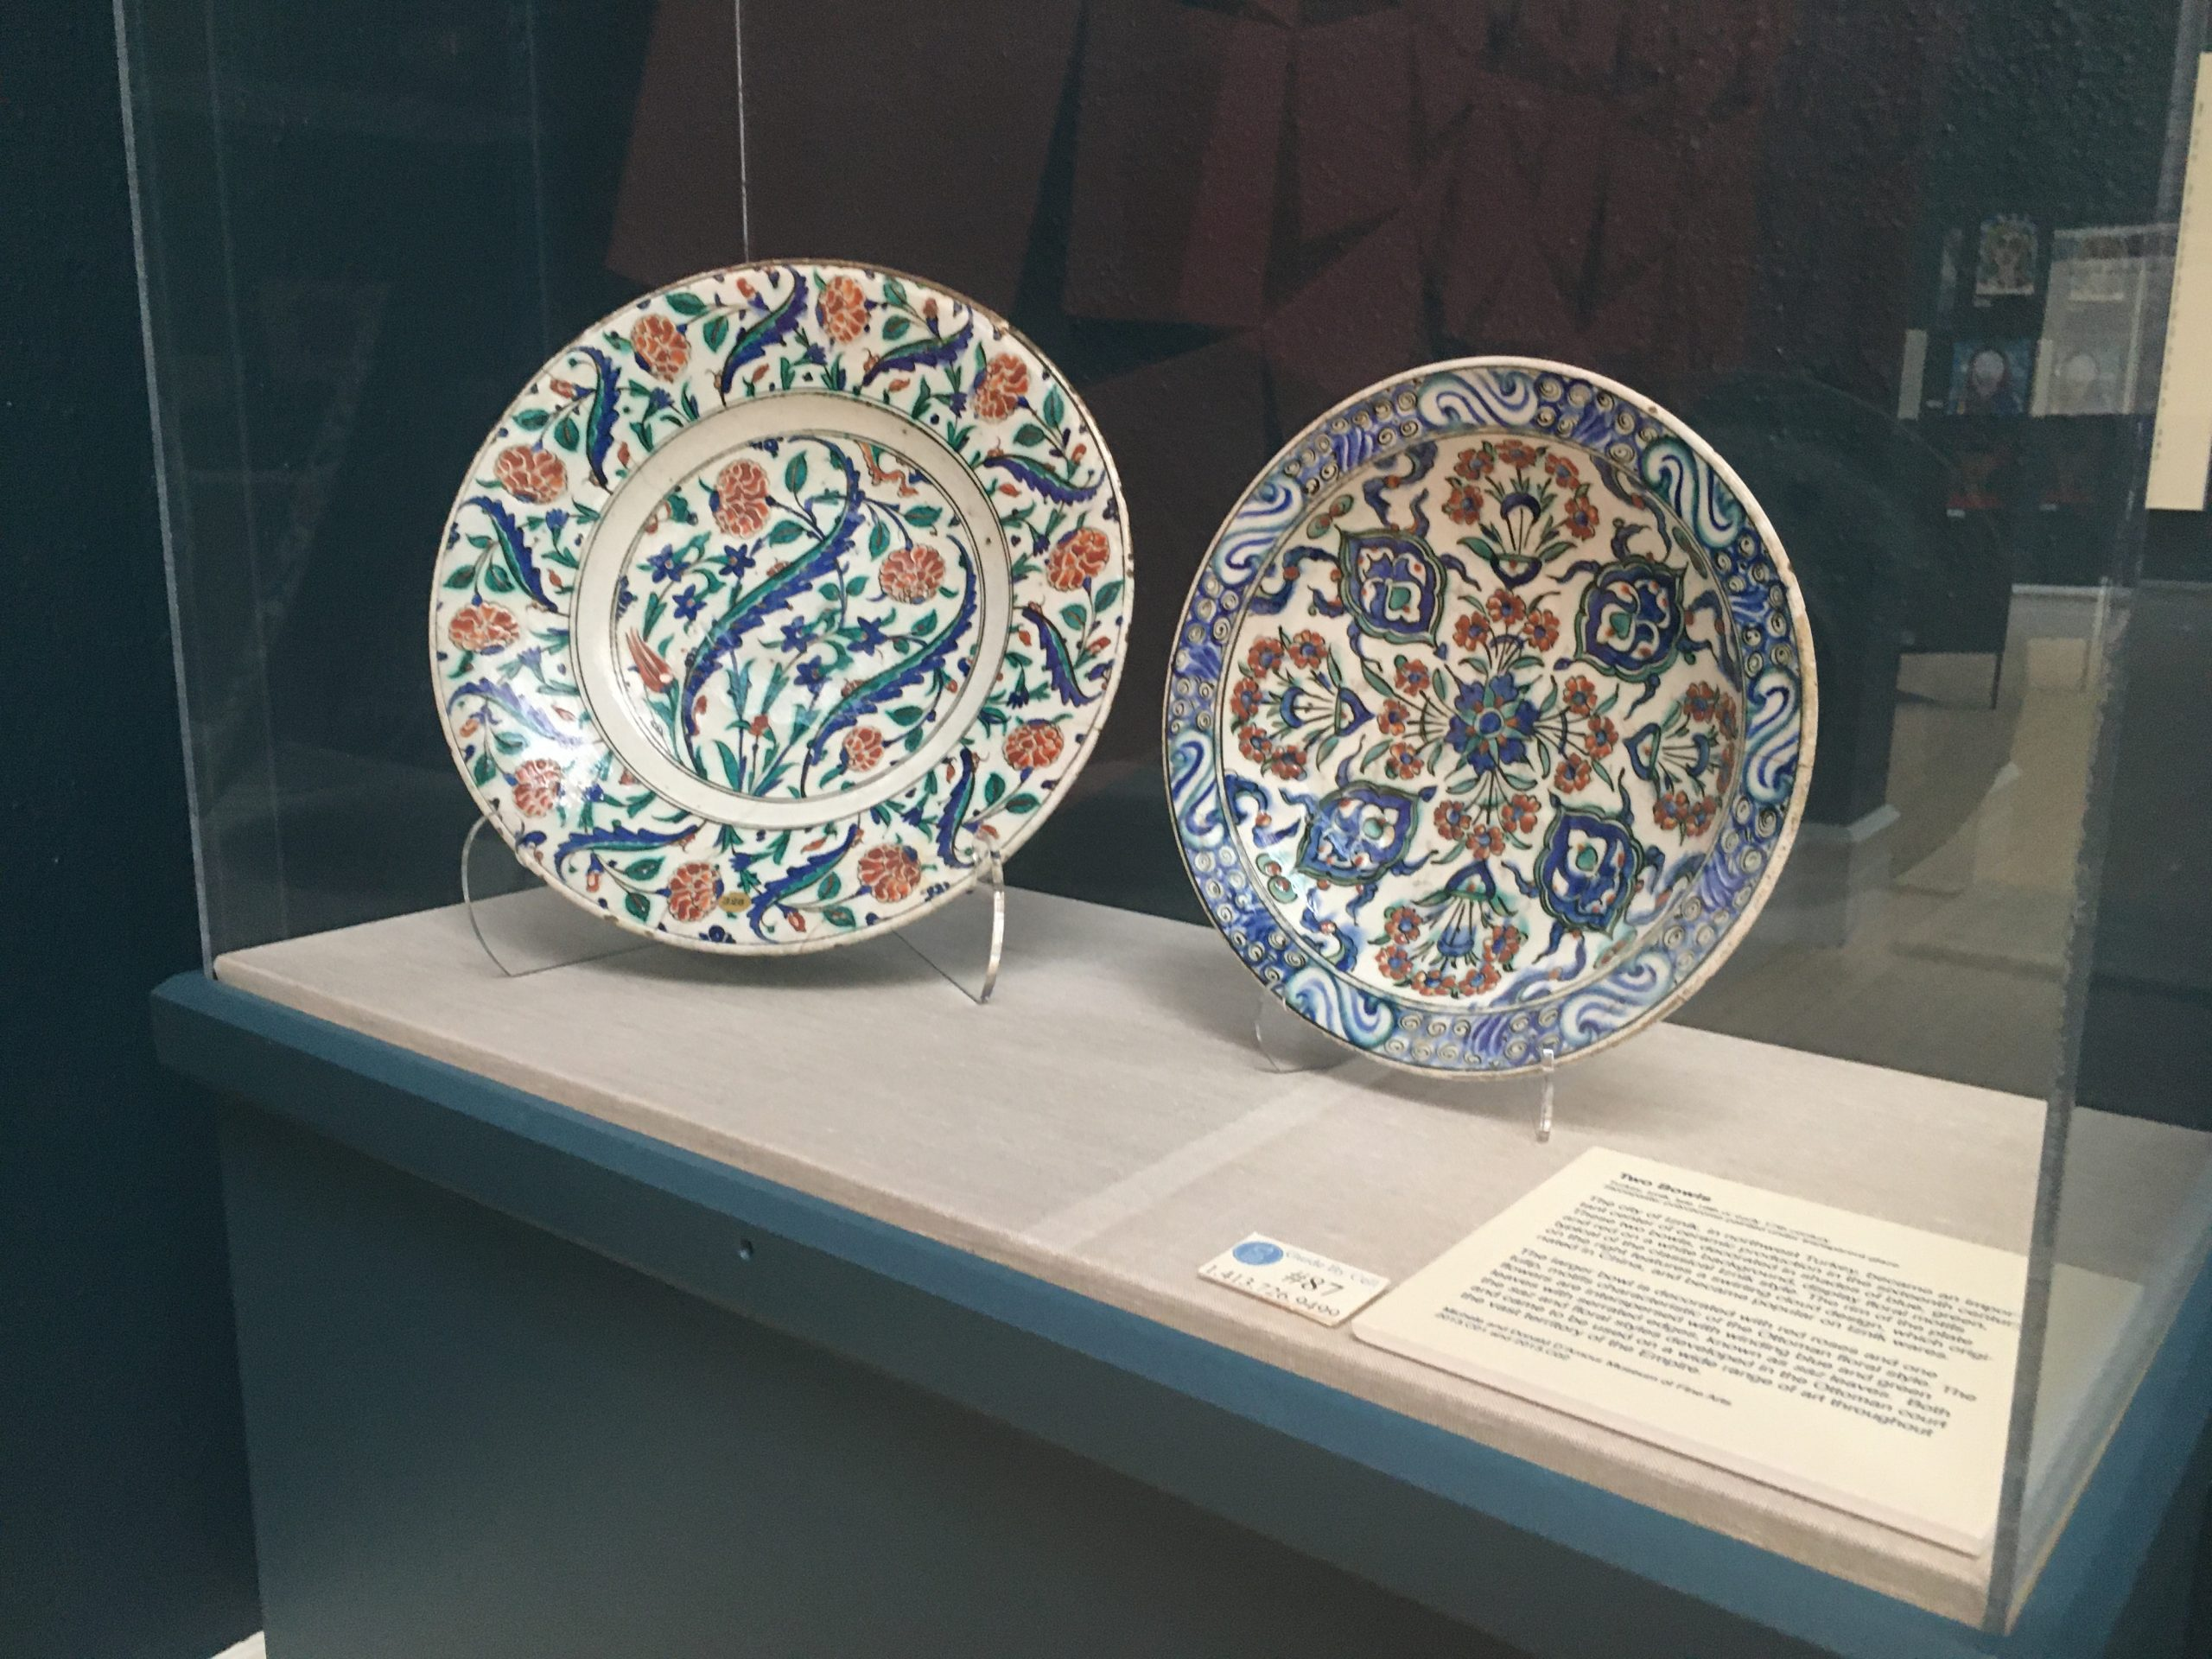 Two Islamic plates decorated with floral designs in a museum case